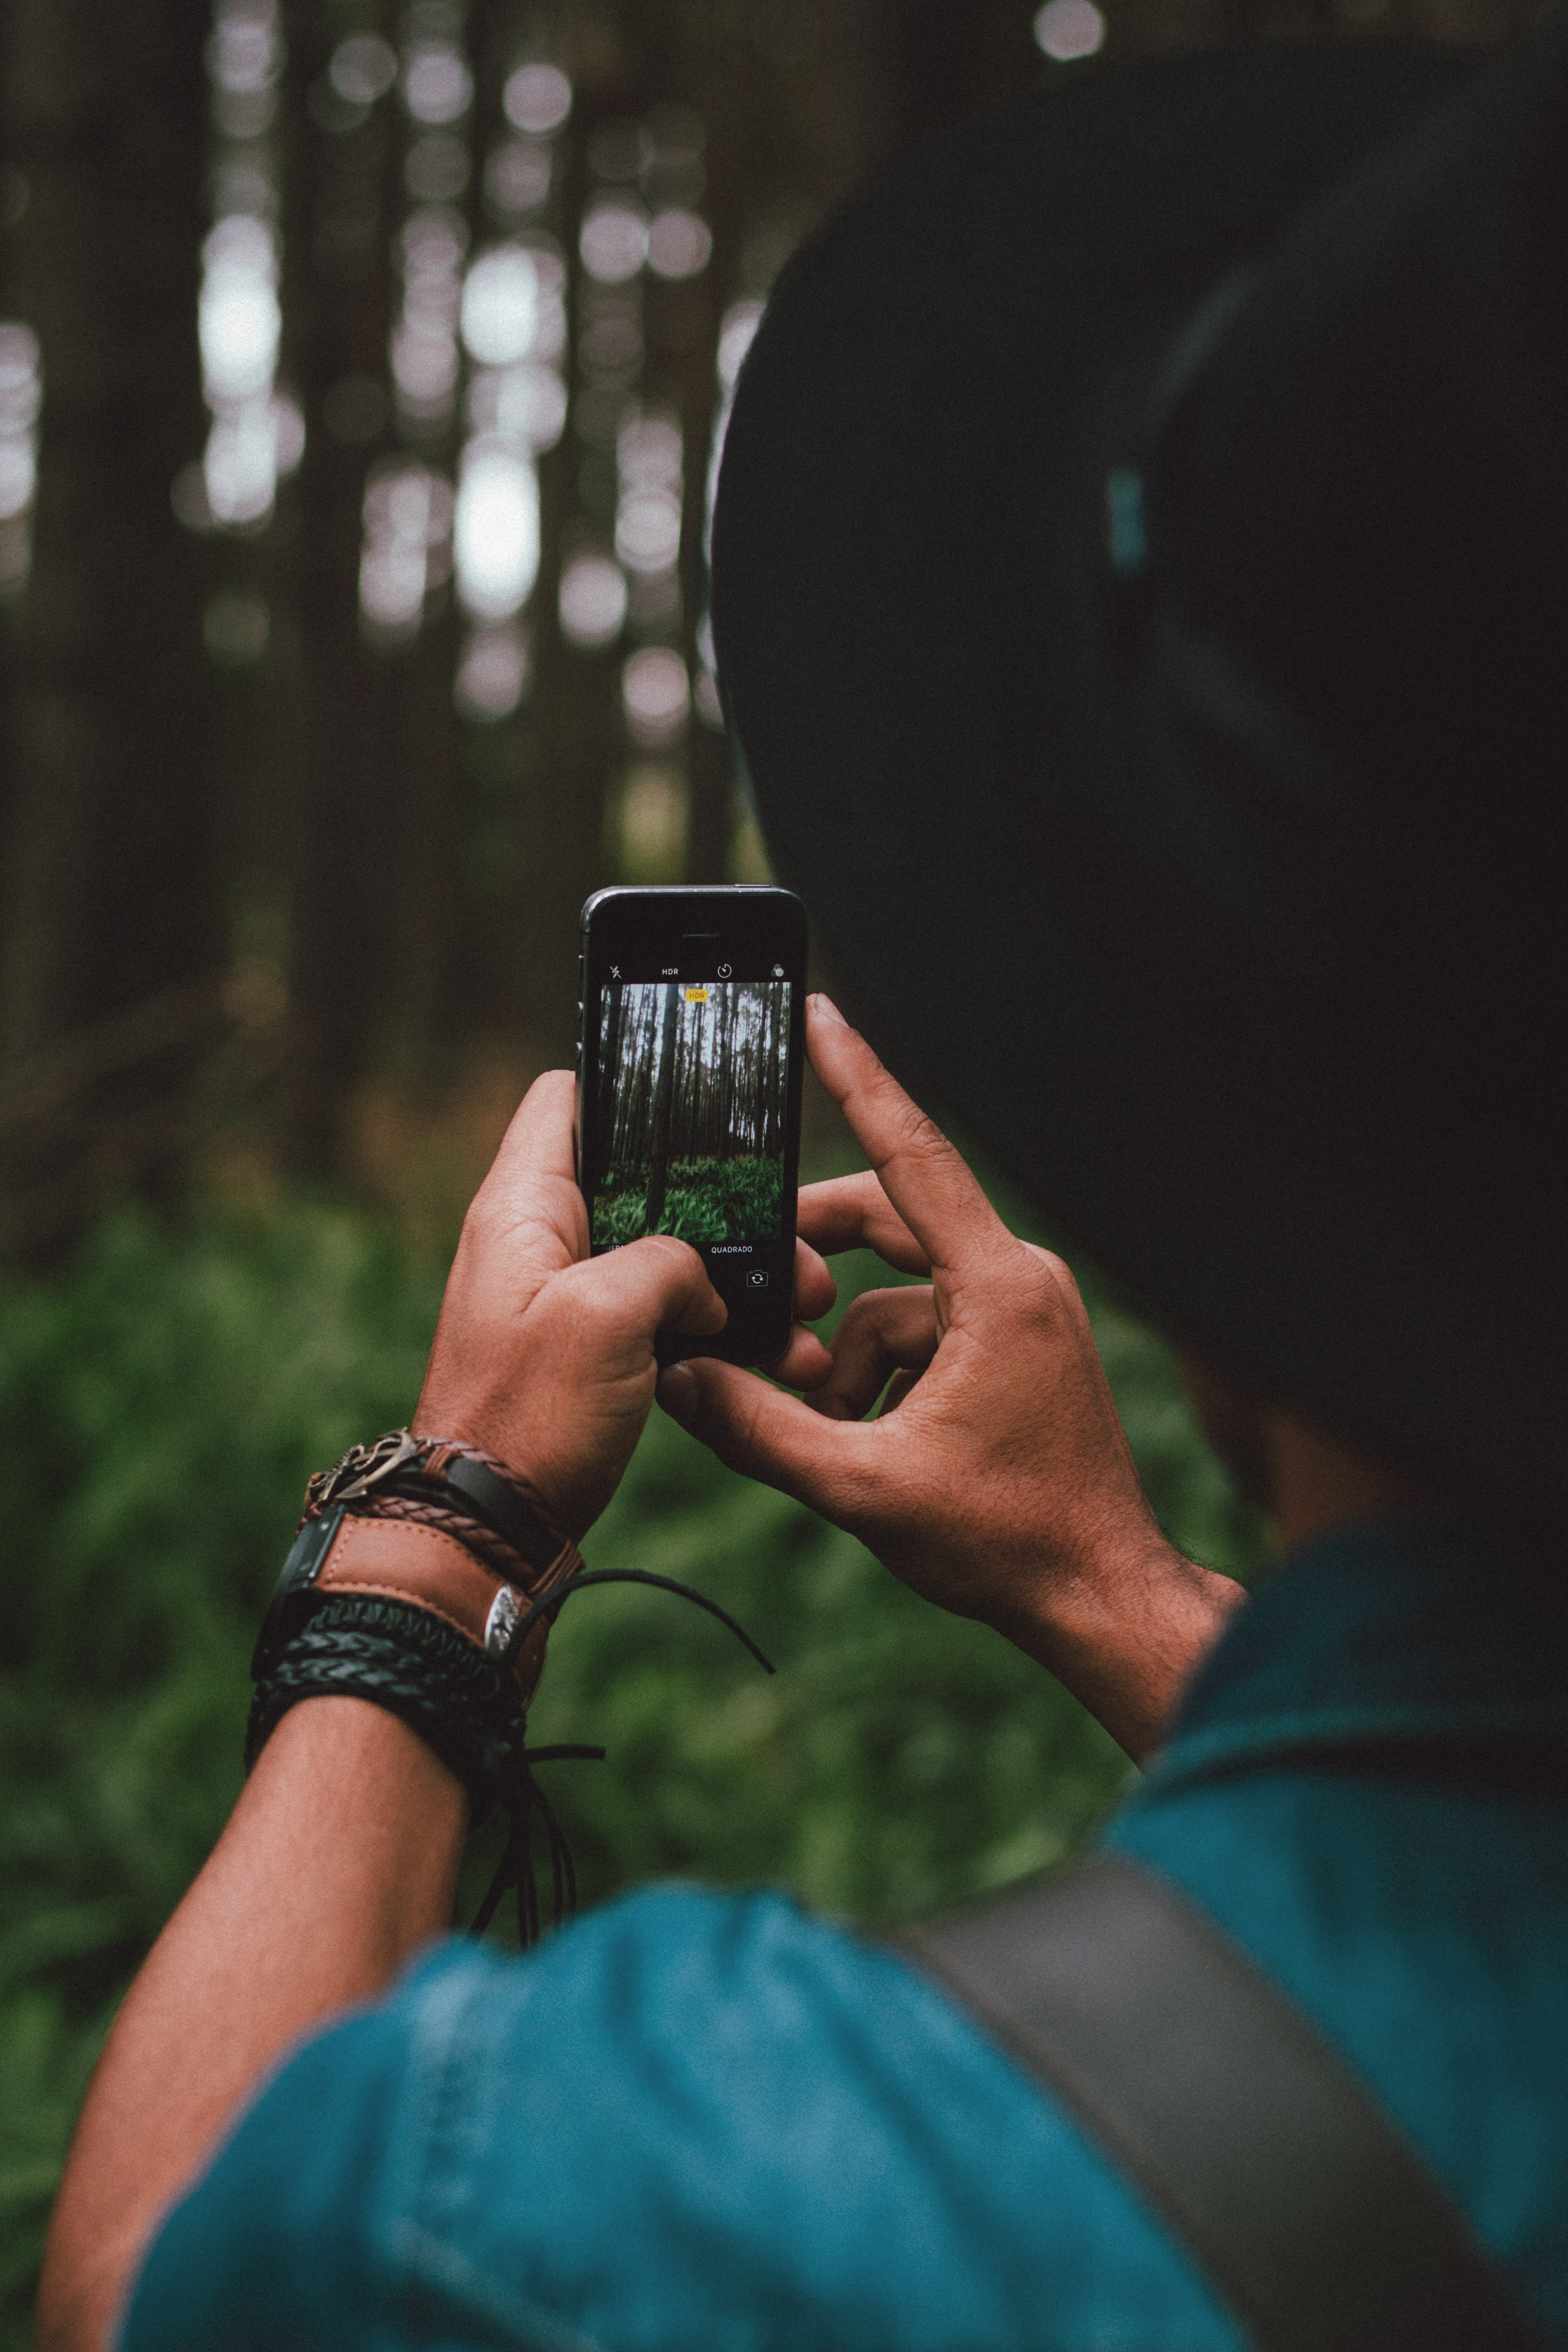 A man is taking a photo of a forest with his iPhone in Cianorte.